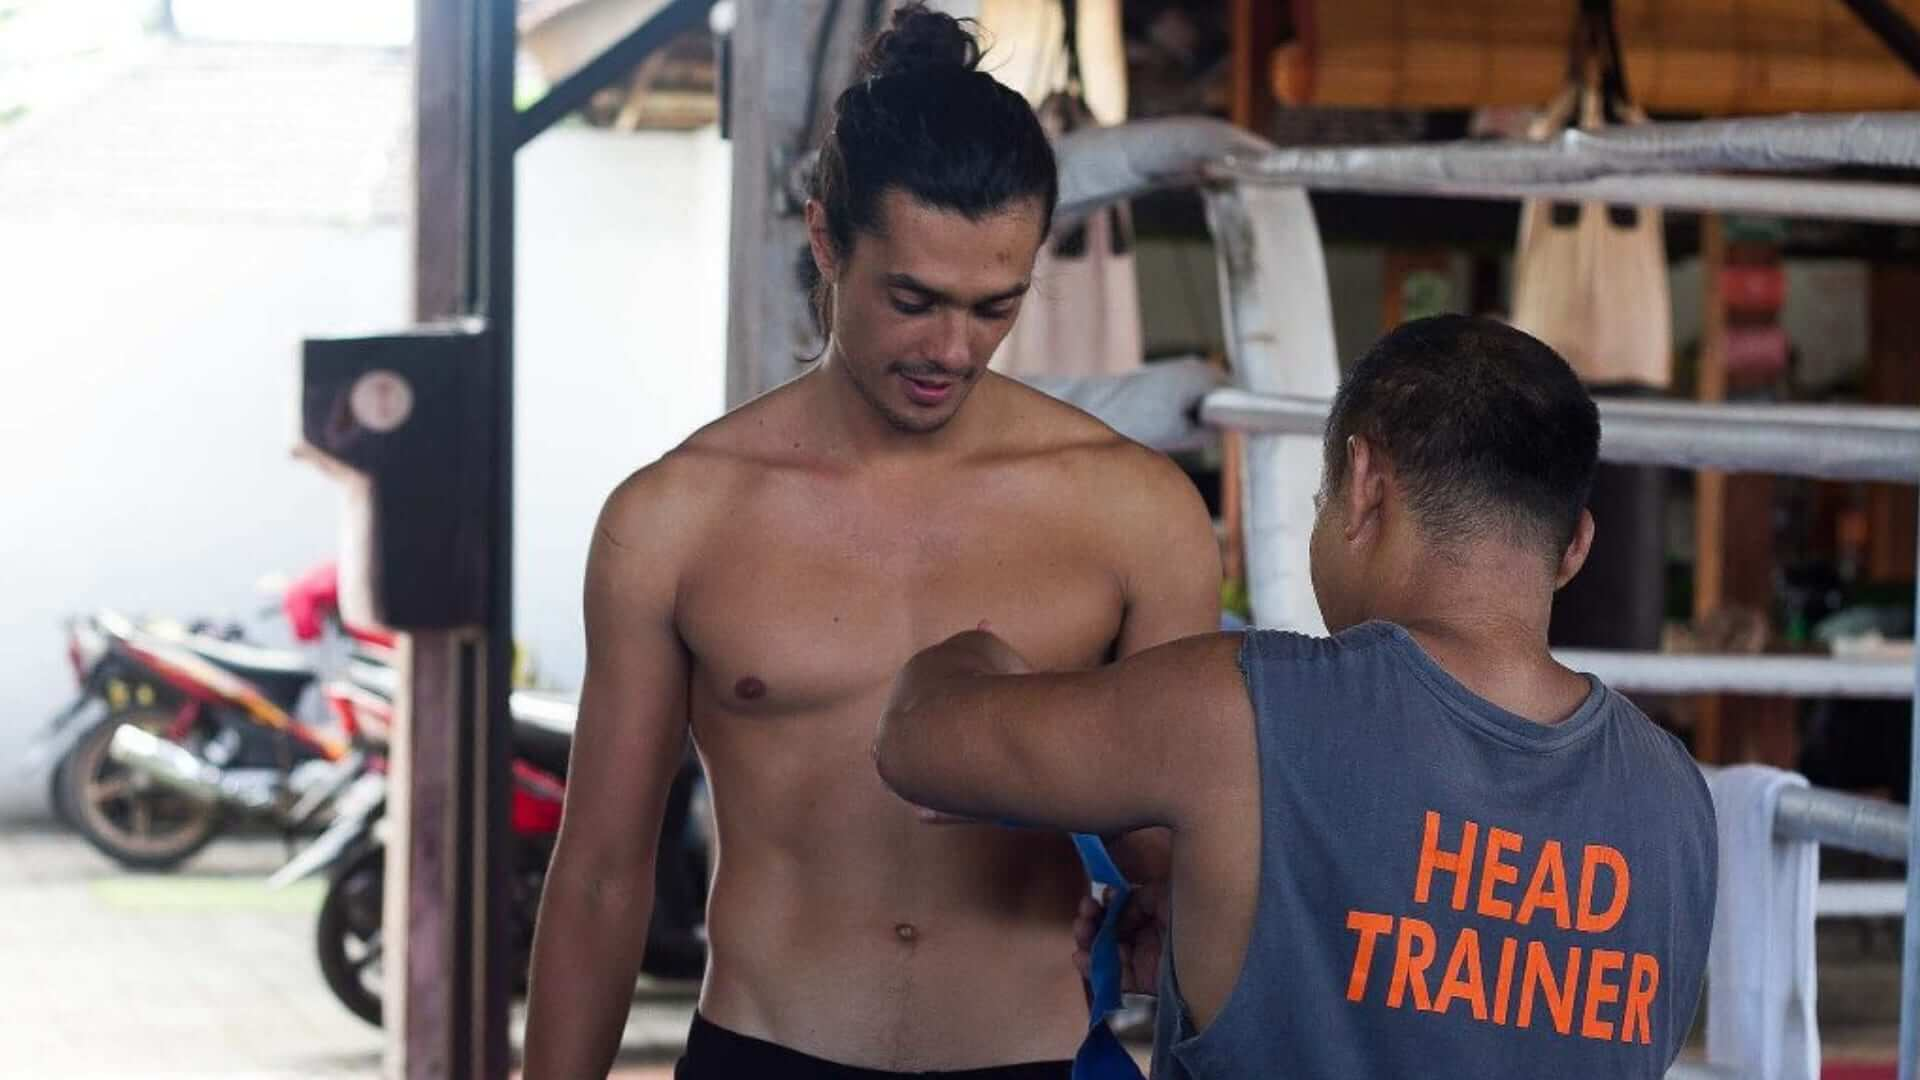 A Muay Thai teacher is explaining someting to another man in Thailand.